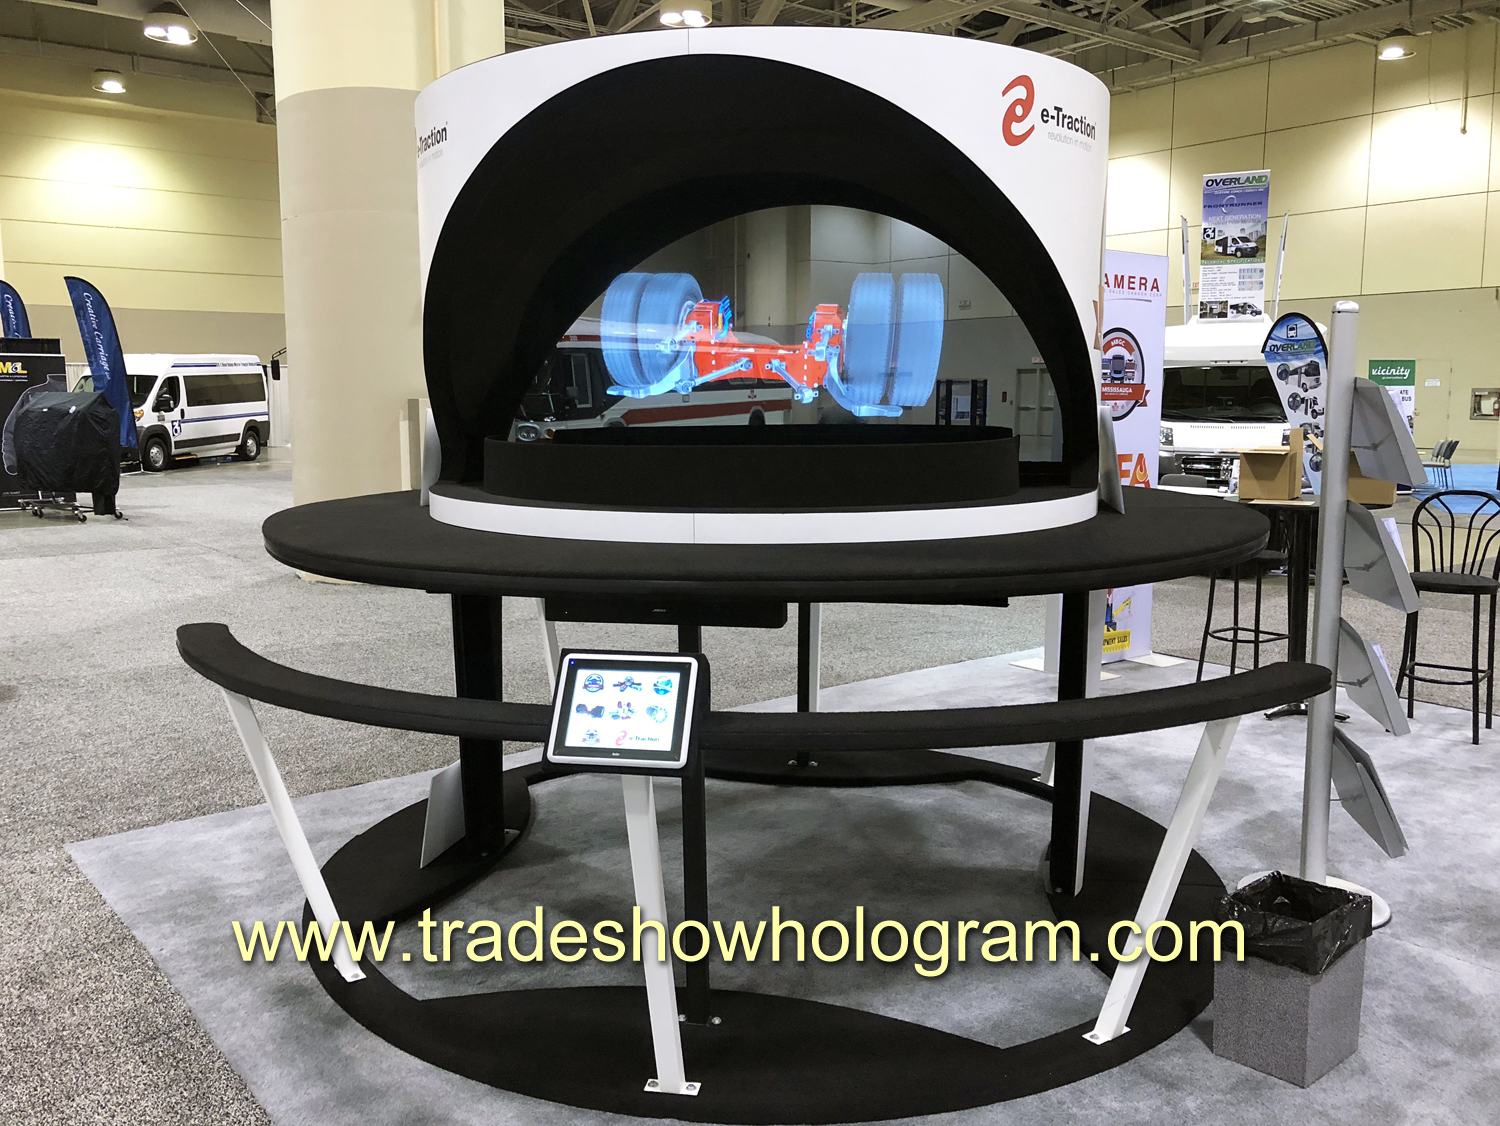 hologram, projector, trade show, toronto